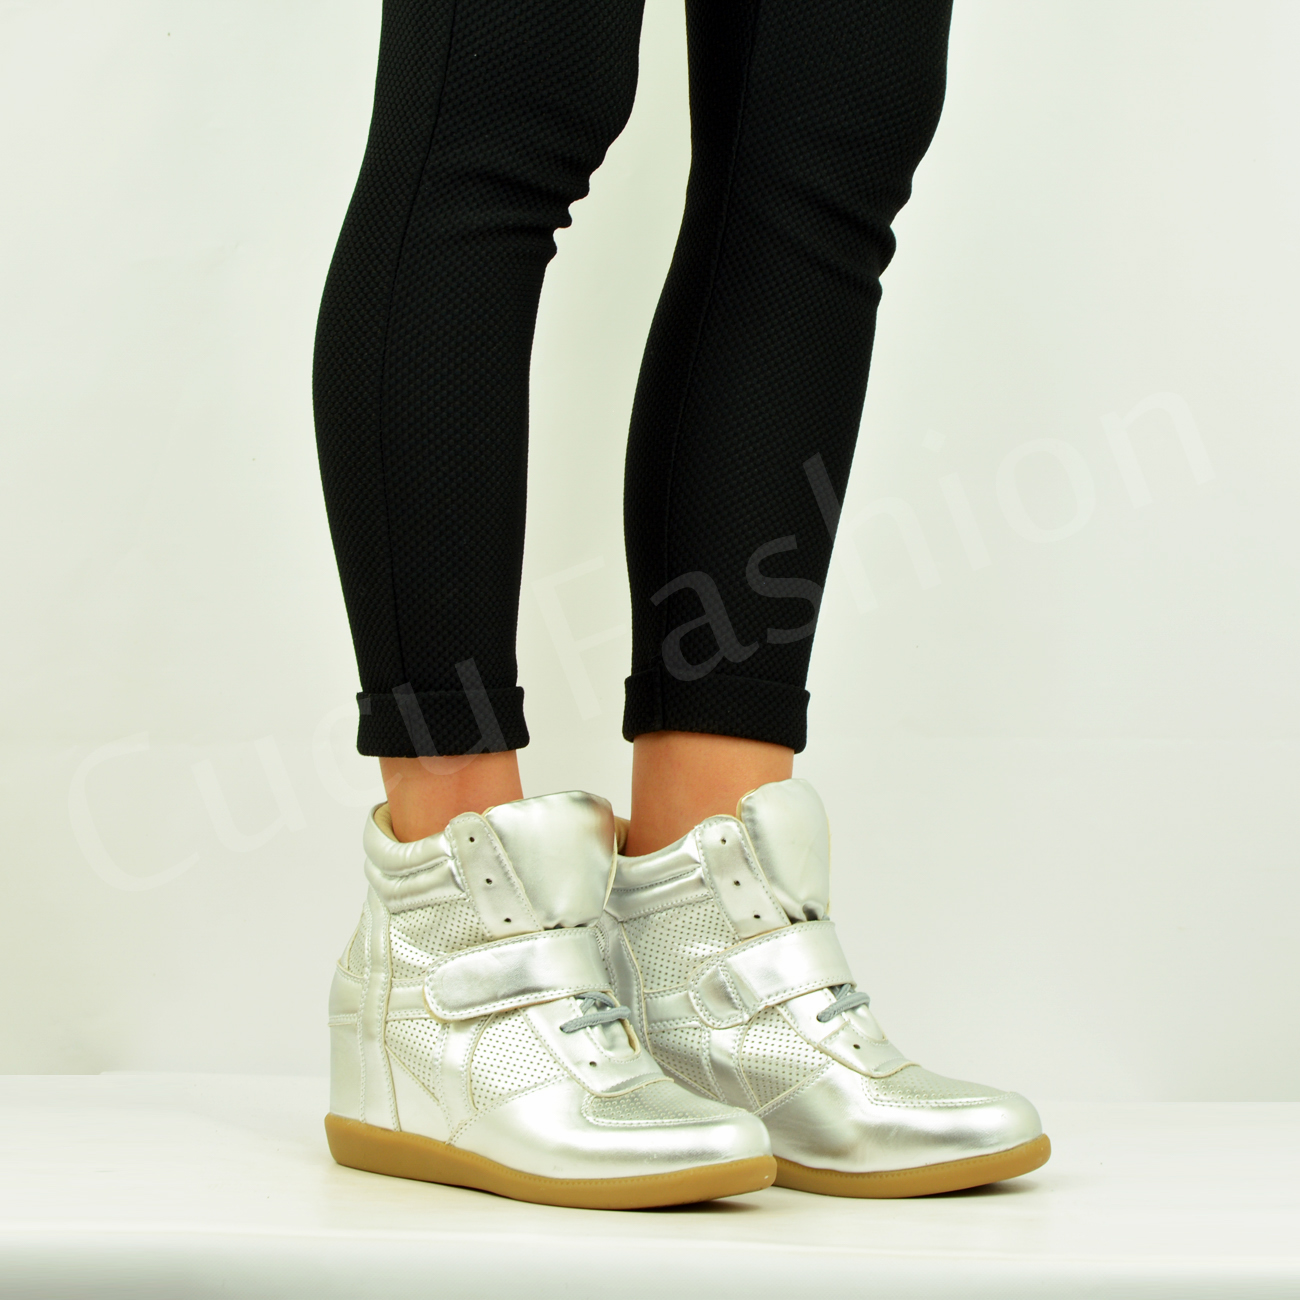 New-Womens-Ladies-Wedge-Trainers-High-Top-Mid-Heel-Platform-Sneakers-Ankle-Boots